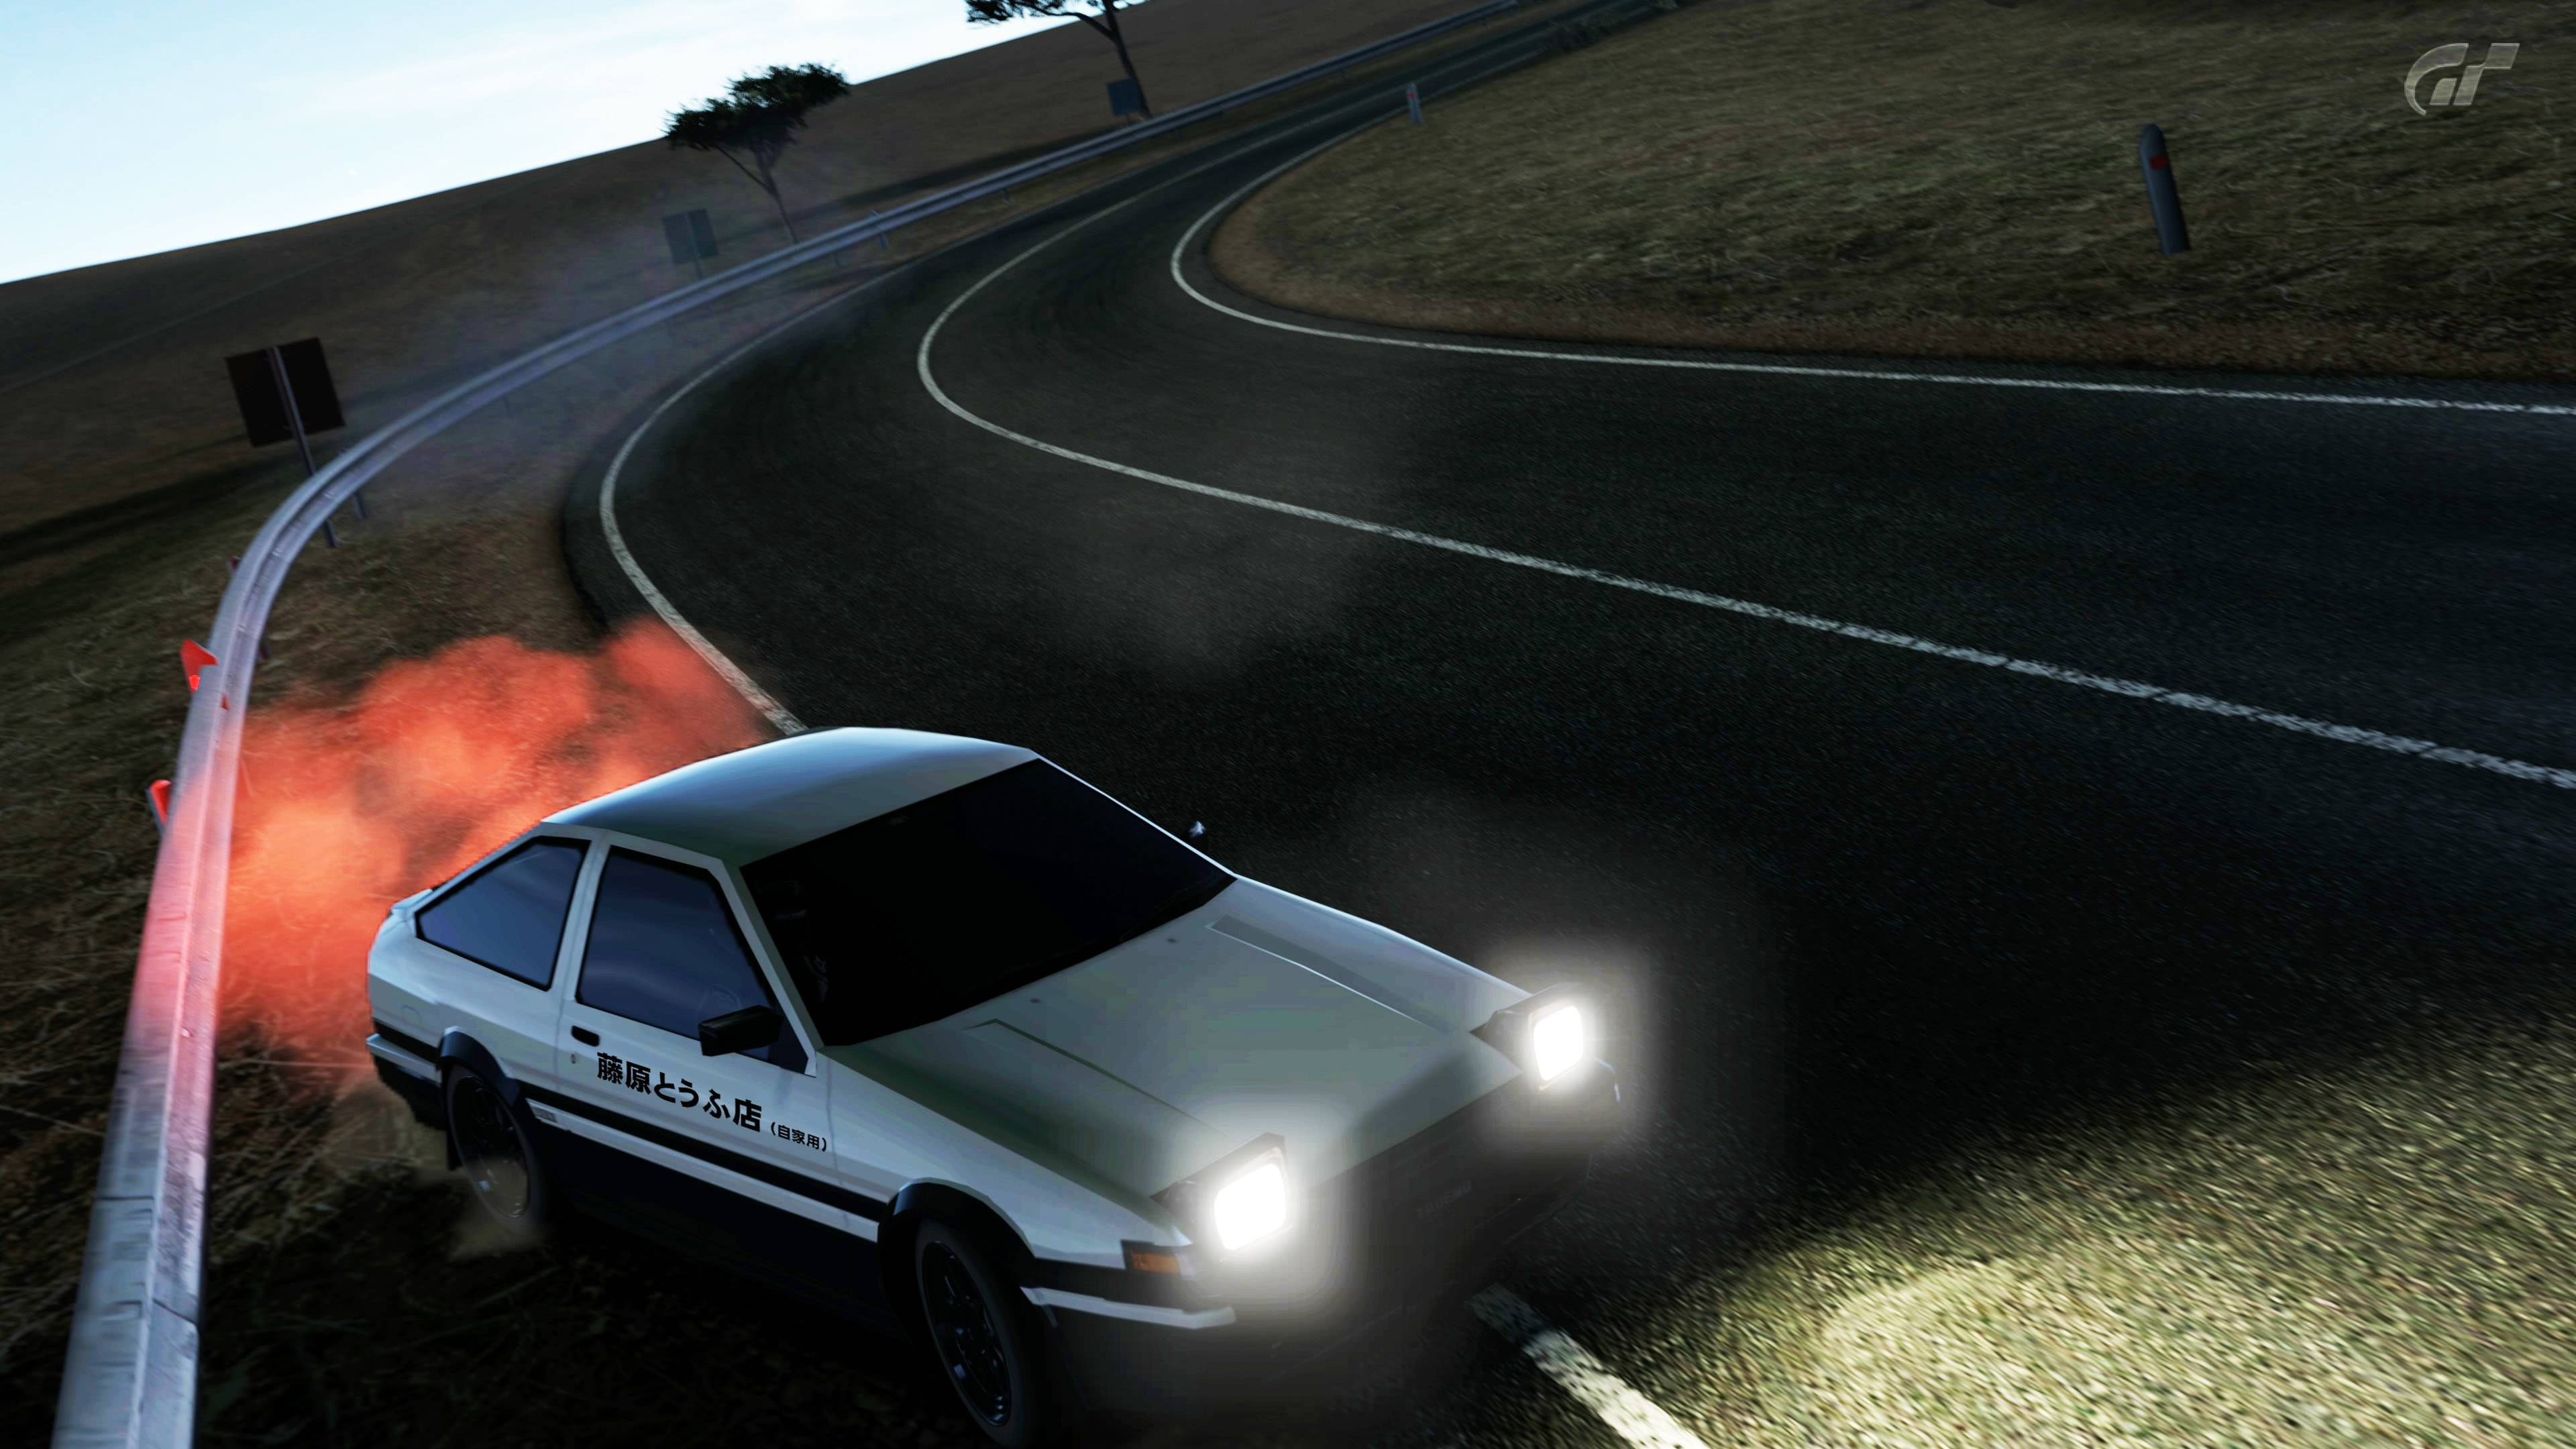 Initial d wallpapers wallpaper cave - Ae86 initial d wallpaper ...